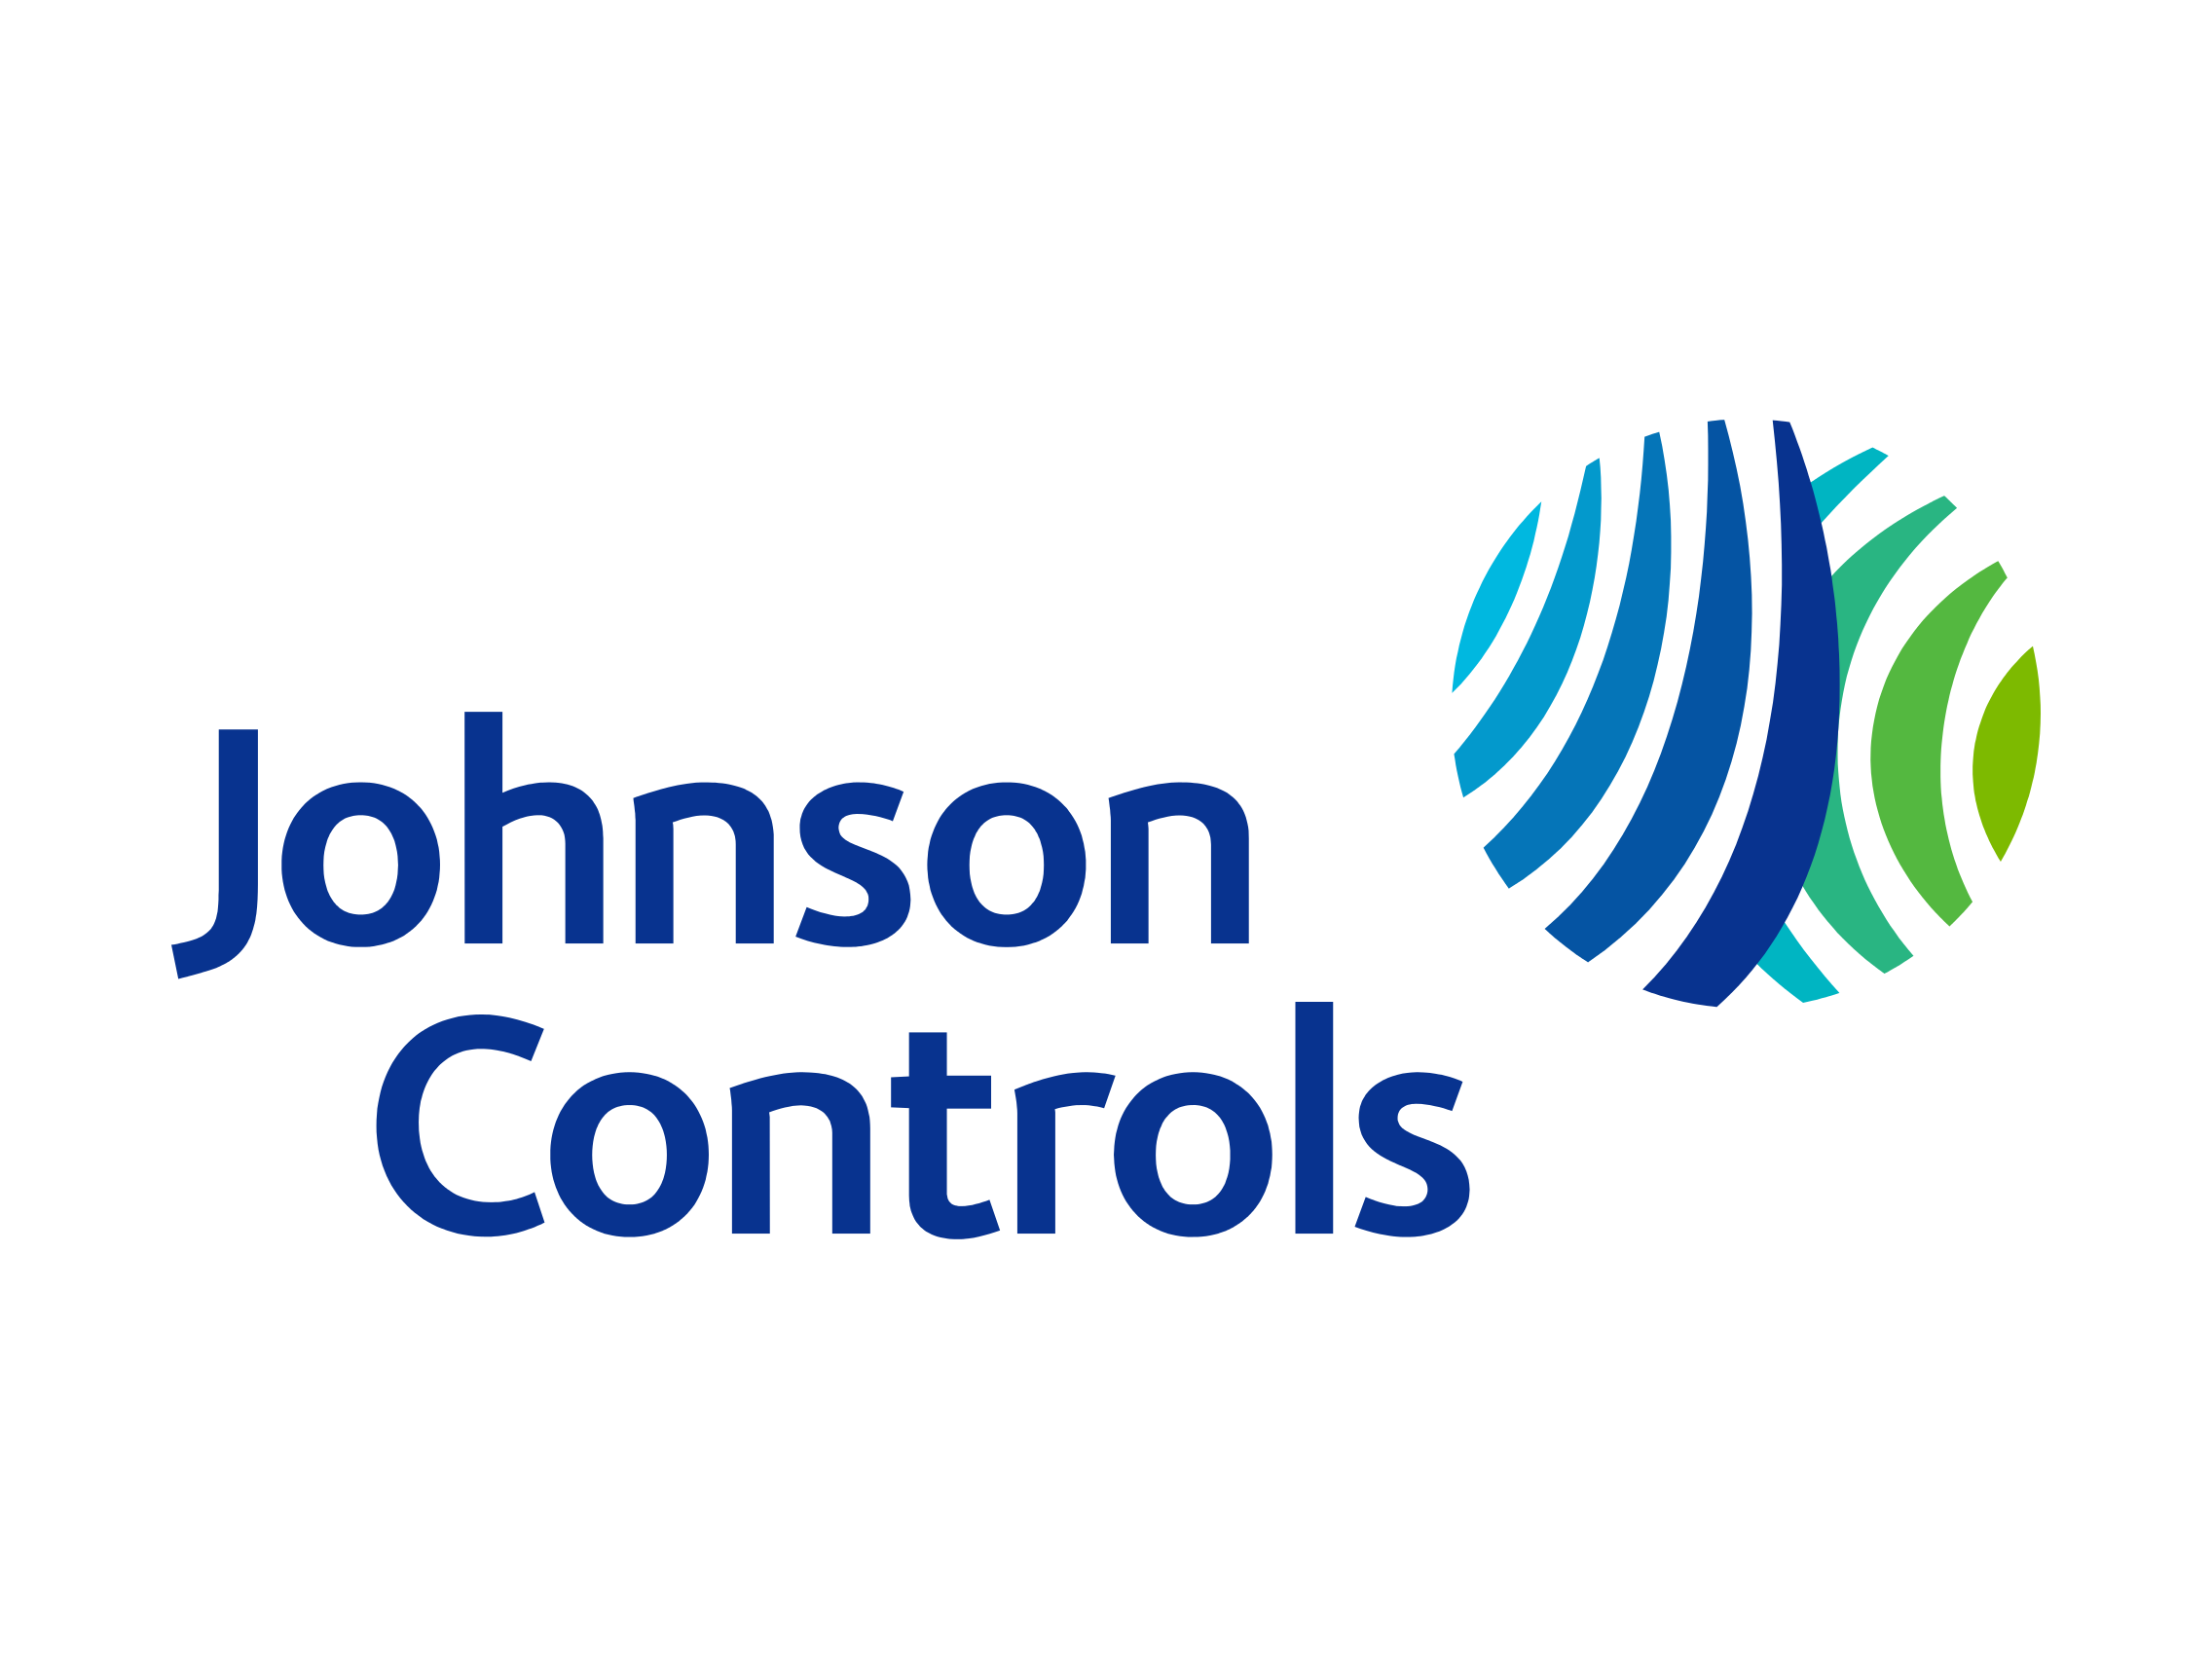 johnson controls 10 johnson controls jobs available in middletown, de on indeedcom fitter, operator, manufacturing supervisor and more.